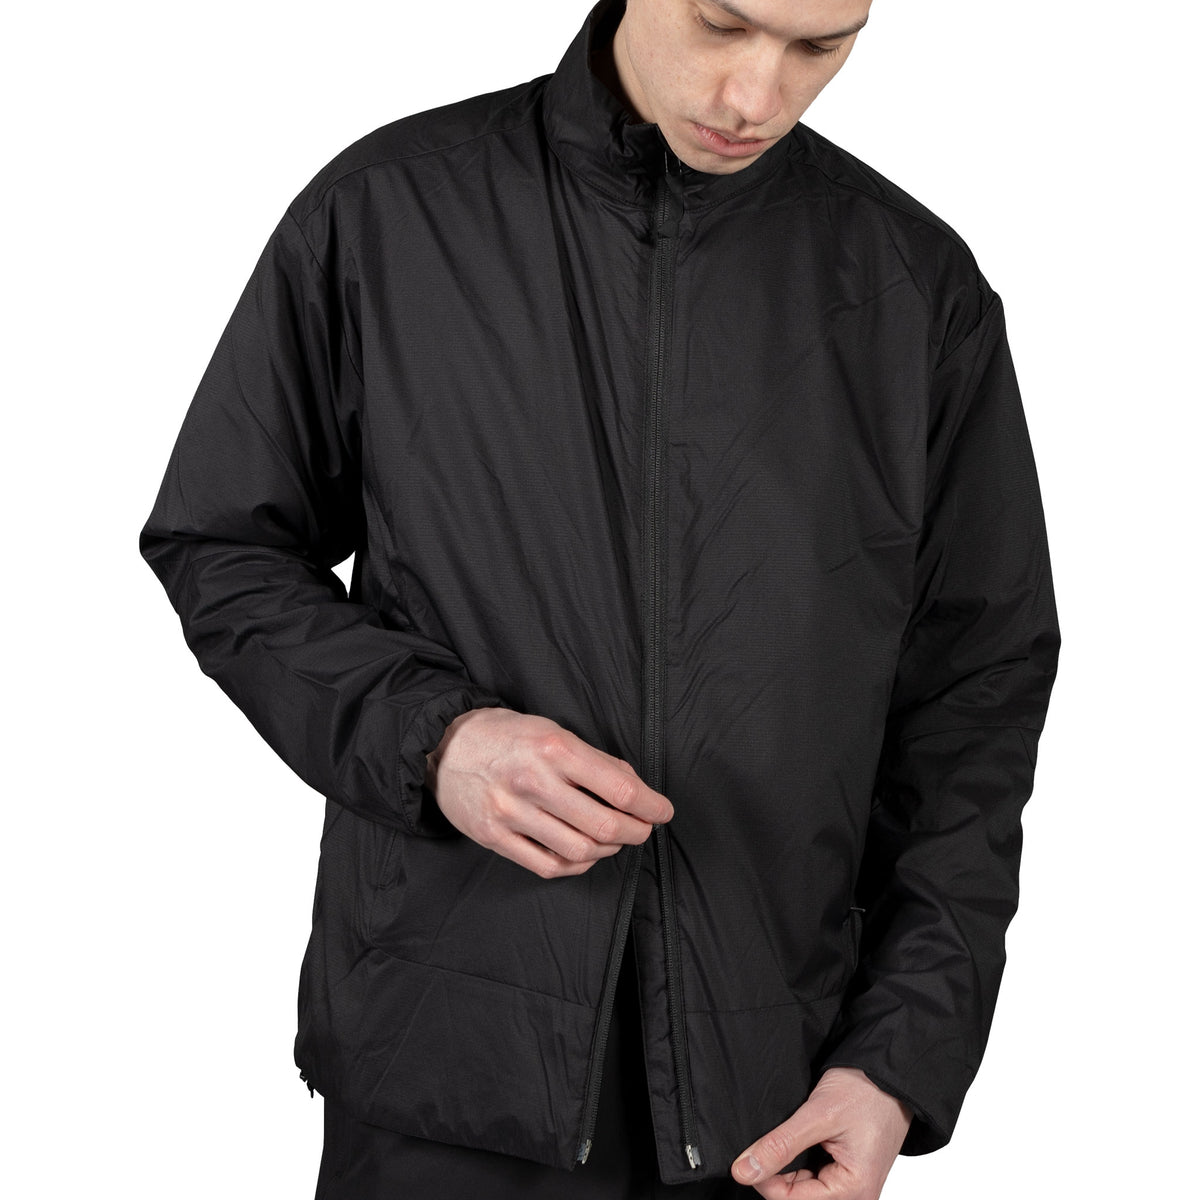 Snow Peak 2L Octa Jacket Black